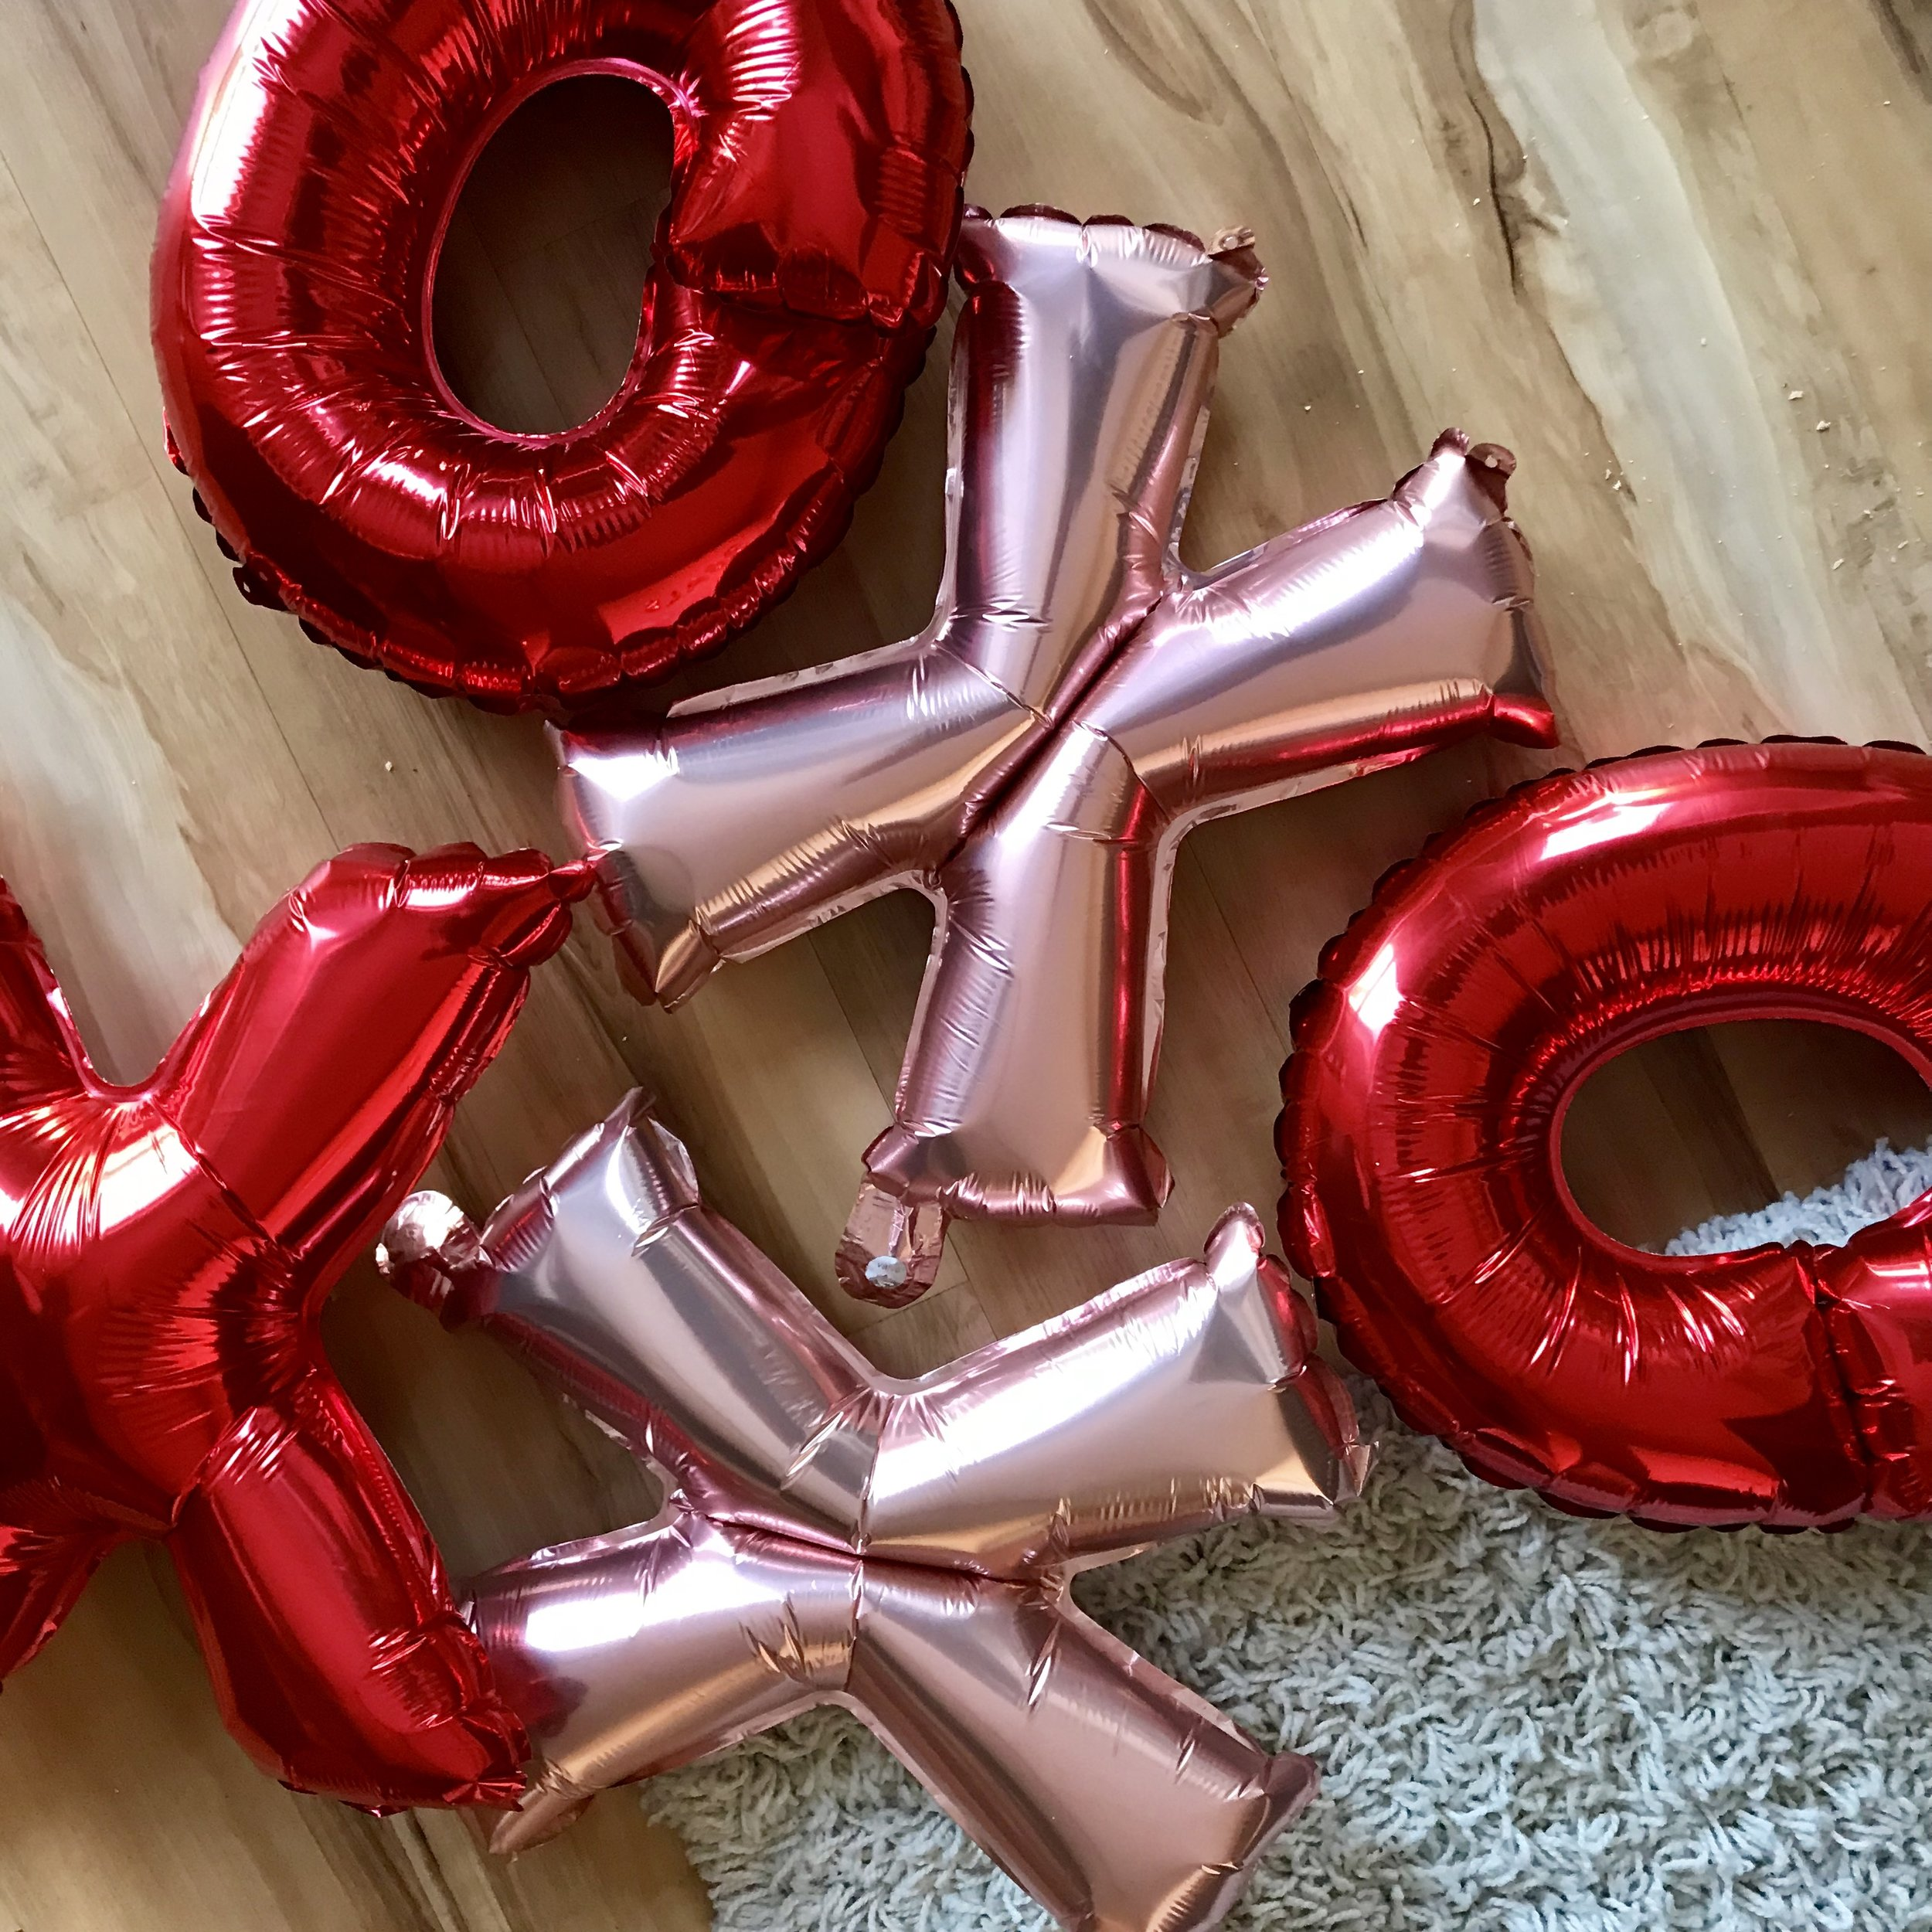 Galentines-Party-Decorations-2.JPEG